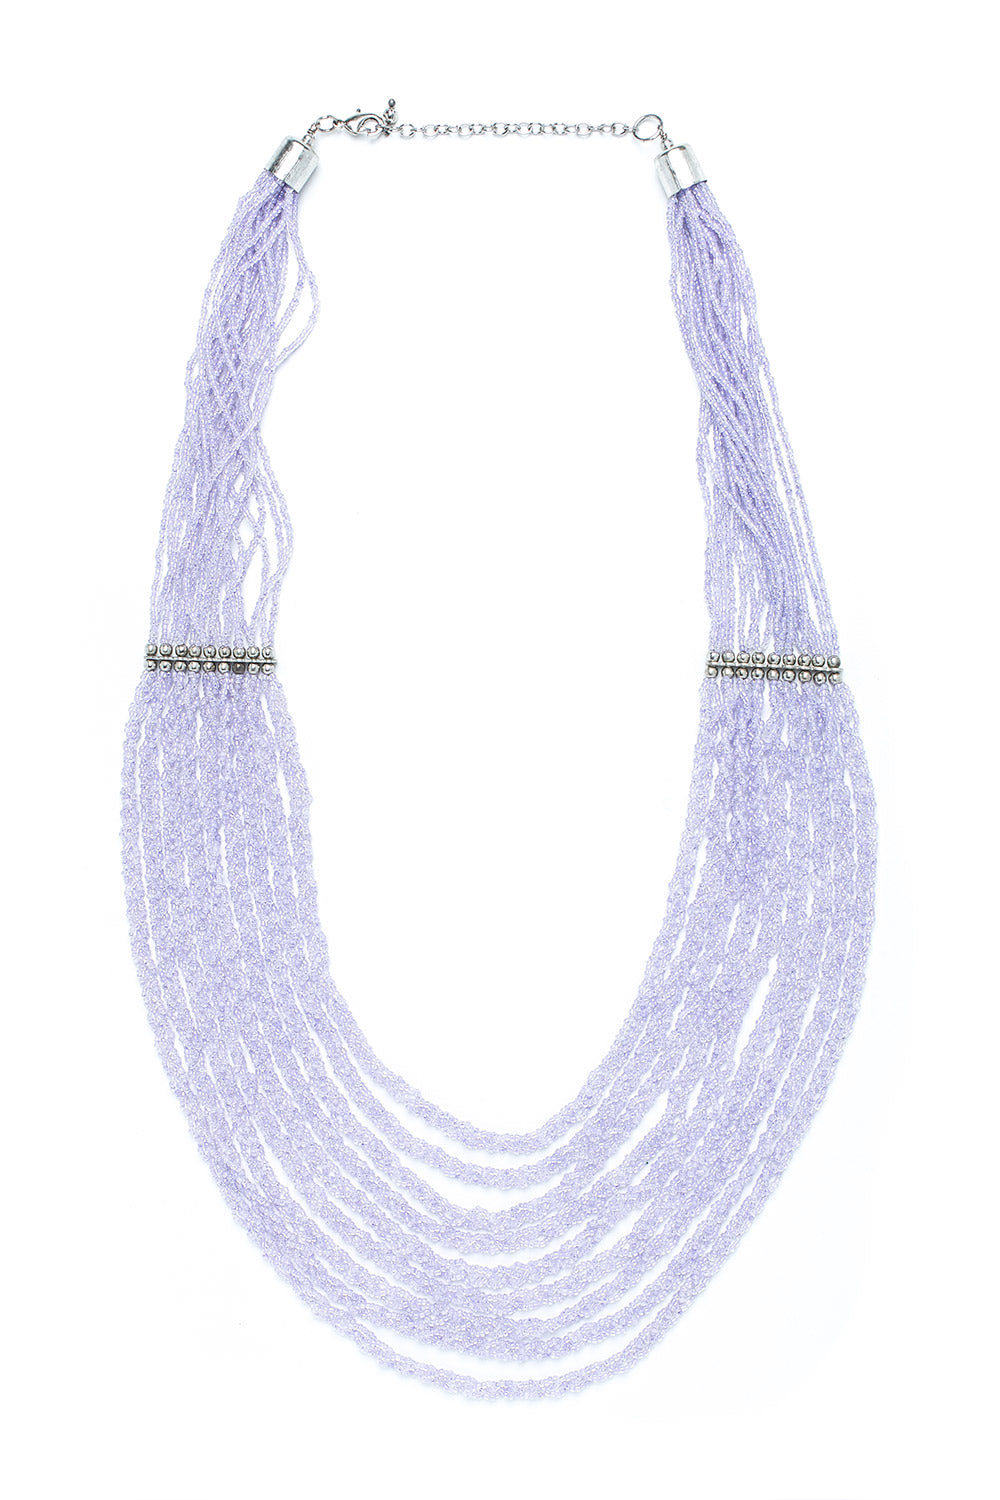 Type 2 Braided Beauty Necklace